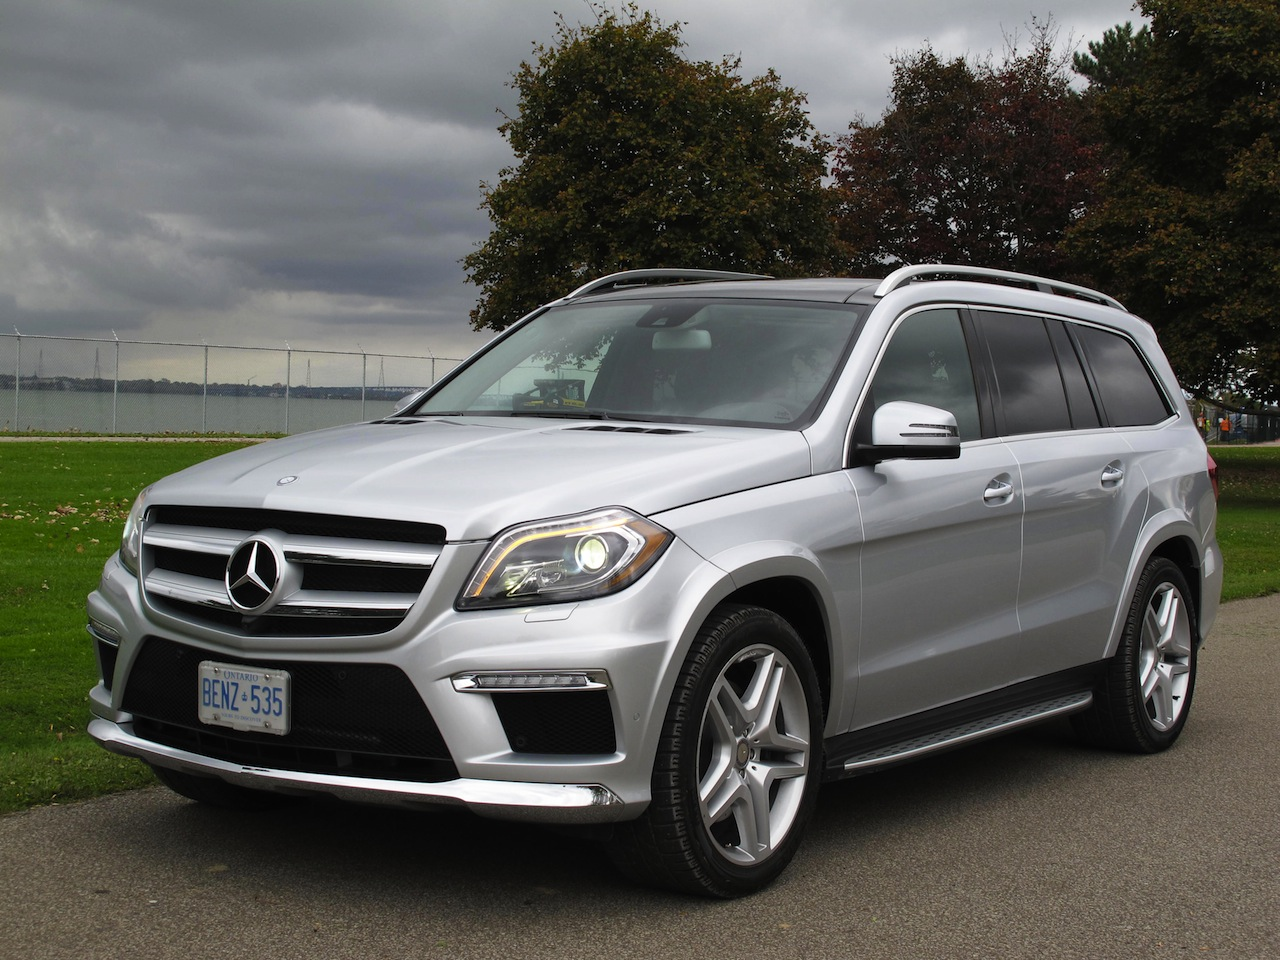 2014 mercedes benz gl350 bluetec photo gallery cars for Mercedes benz gl 350 bluetec